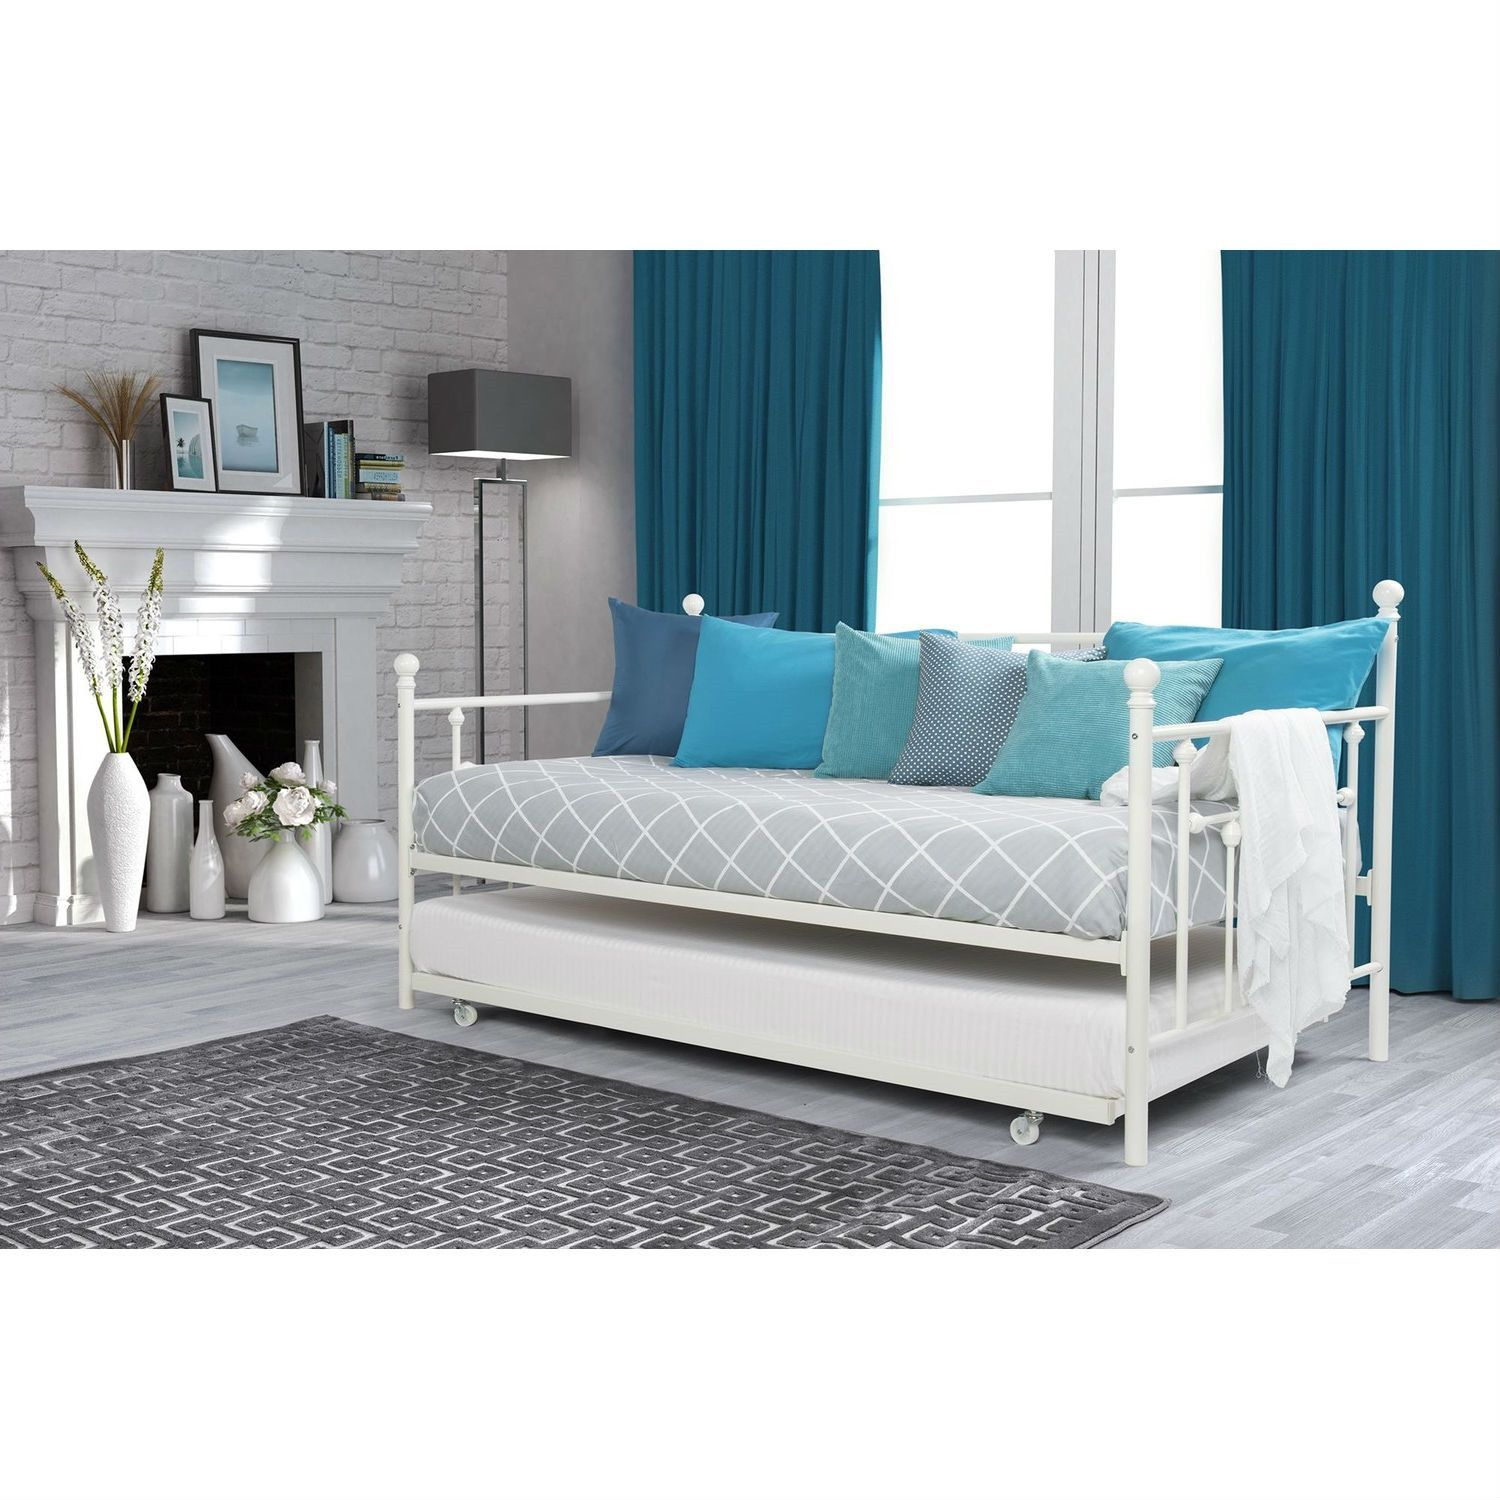 Twin size White Metal DayBed with Rollout Trundle Bed